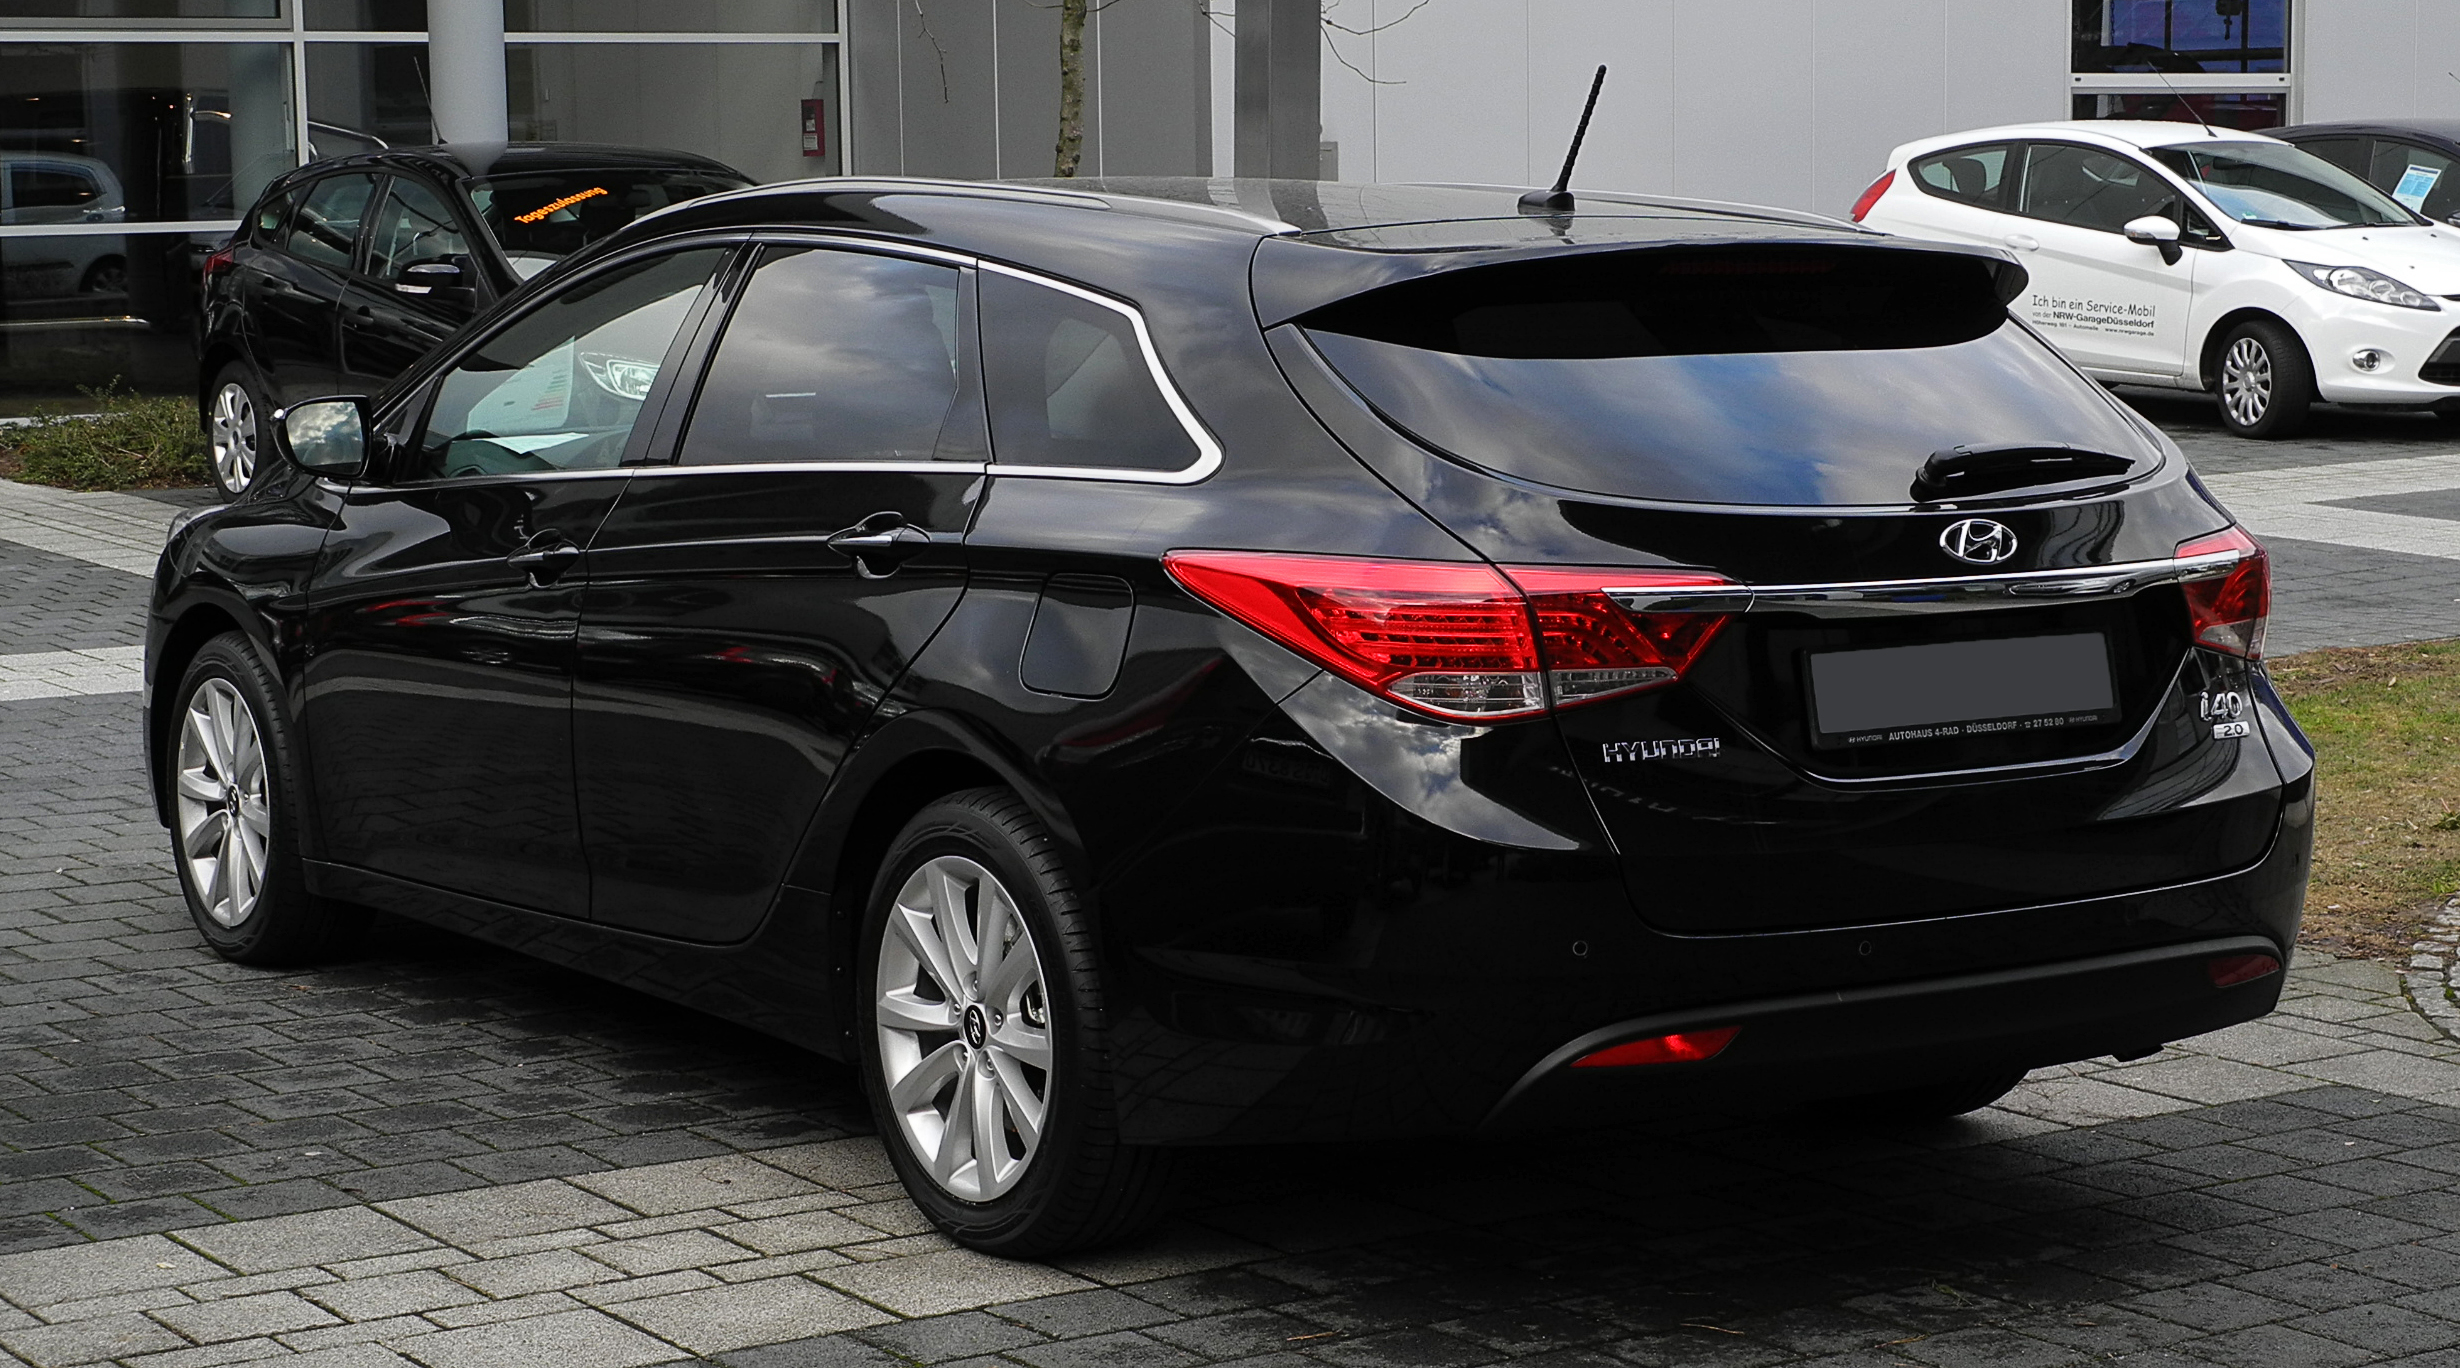 2013 hyundai i40 cw pictures information and specs. Black Bedroom Furniture Sets. Home Design Ideas